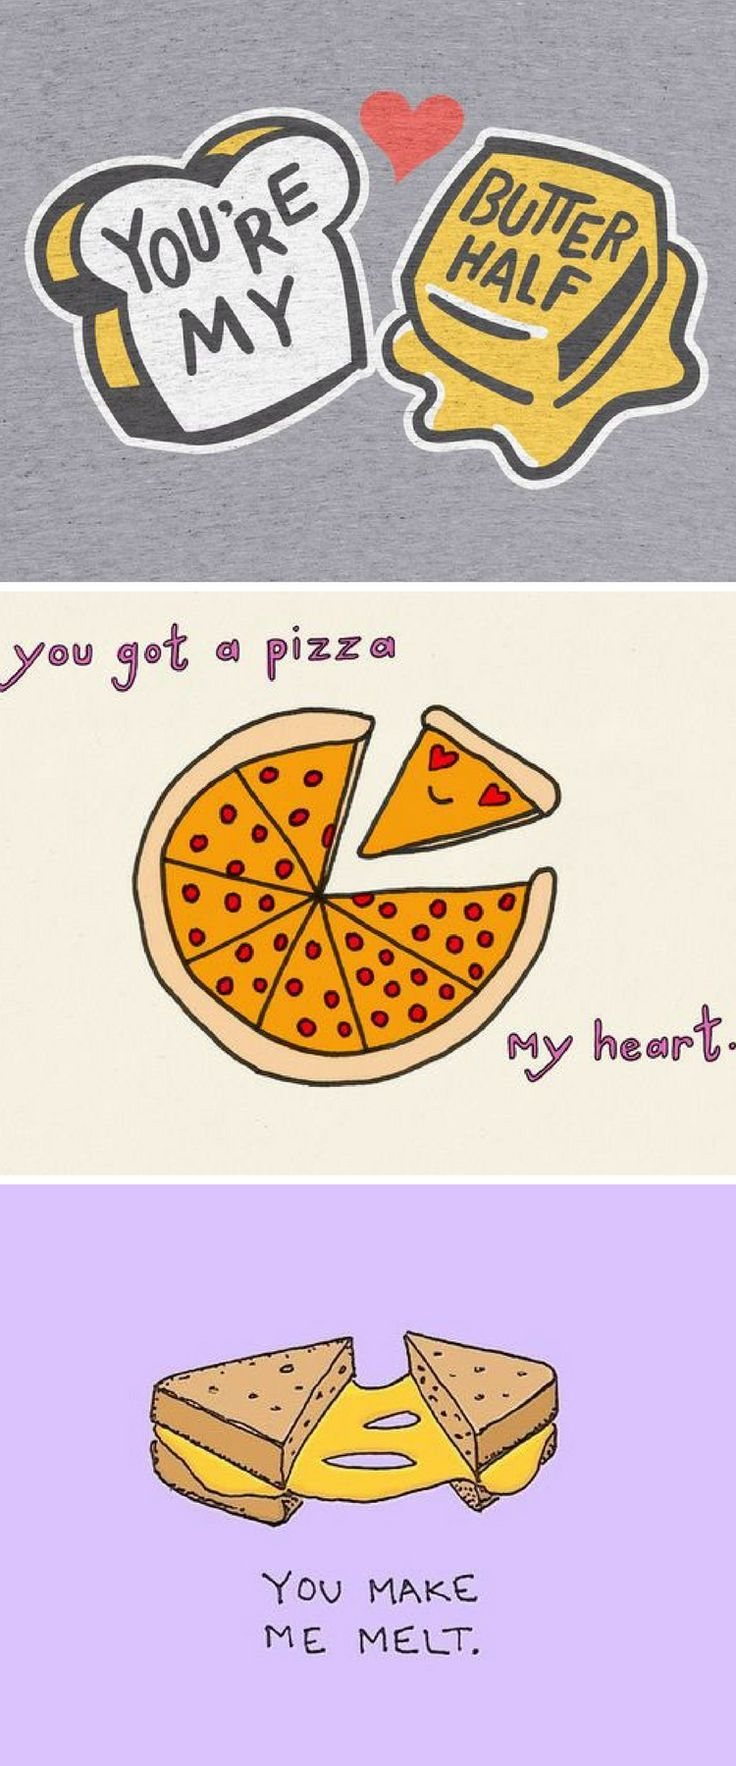 20 Fun Food Puns For Valentine S Day And Beyond Funny Puns Valentines Puns